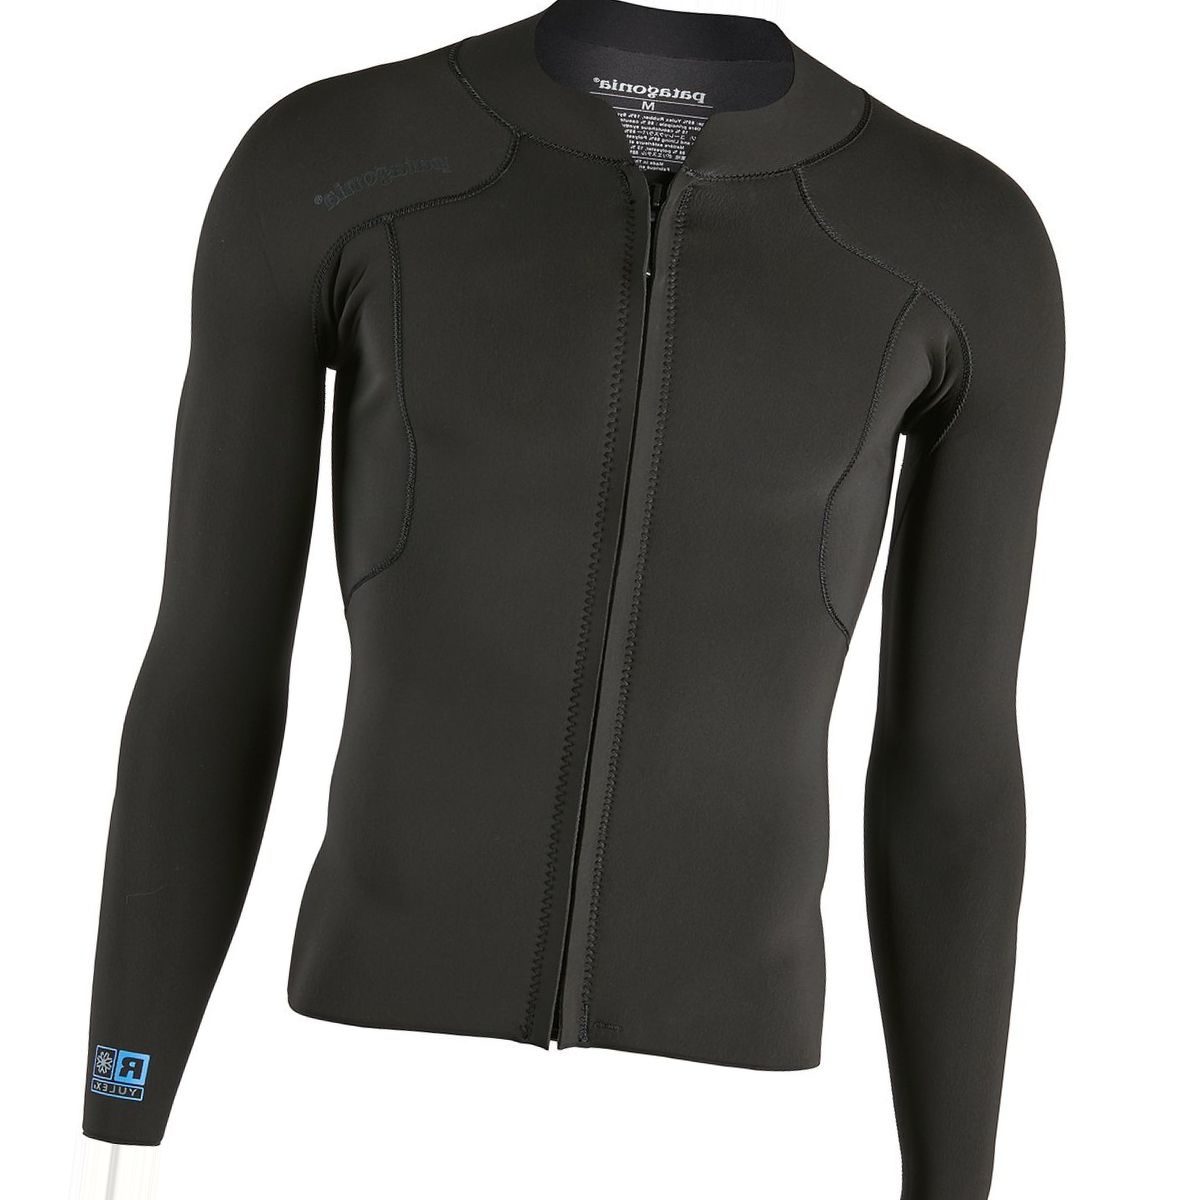 Patagonia R1 Lite Yulex Front-Zip Long-Sleeve Top - Men's